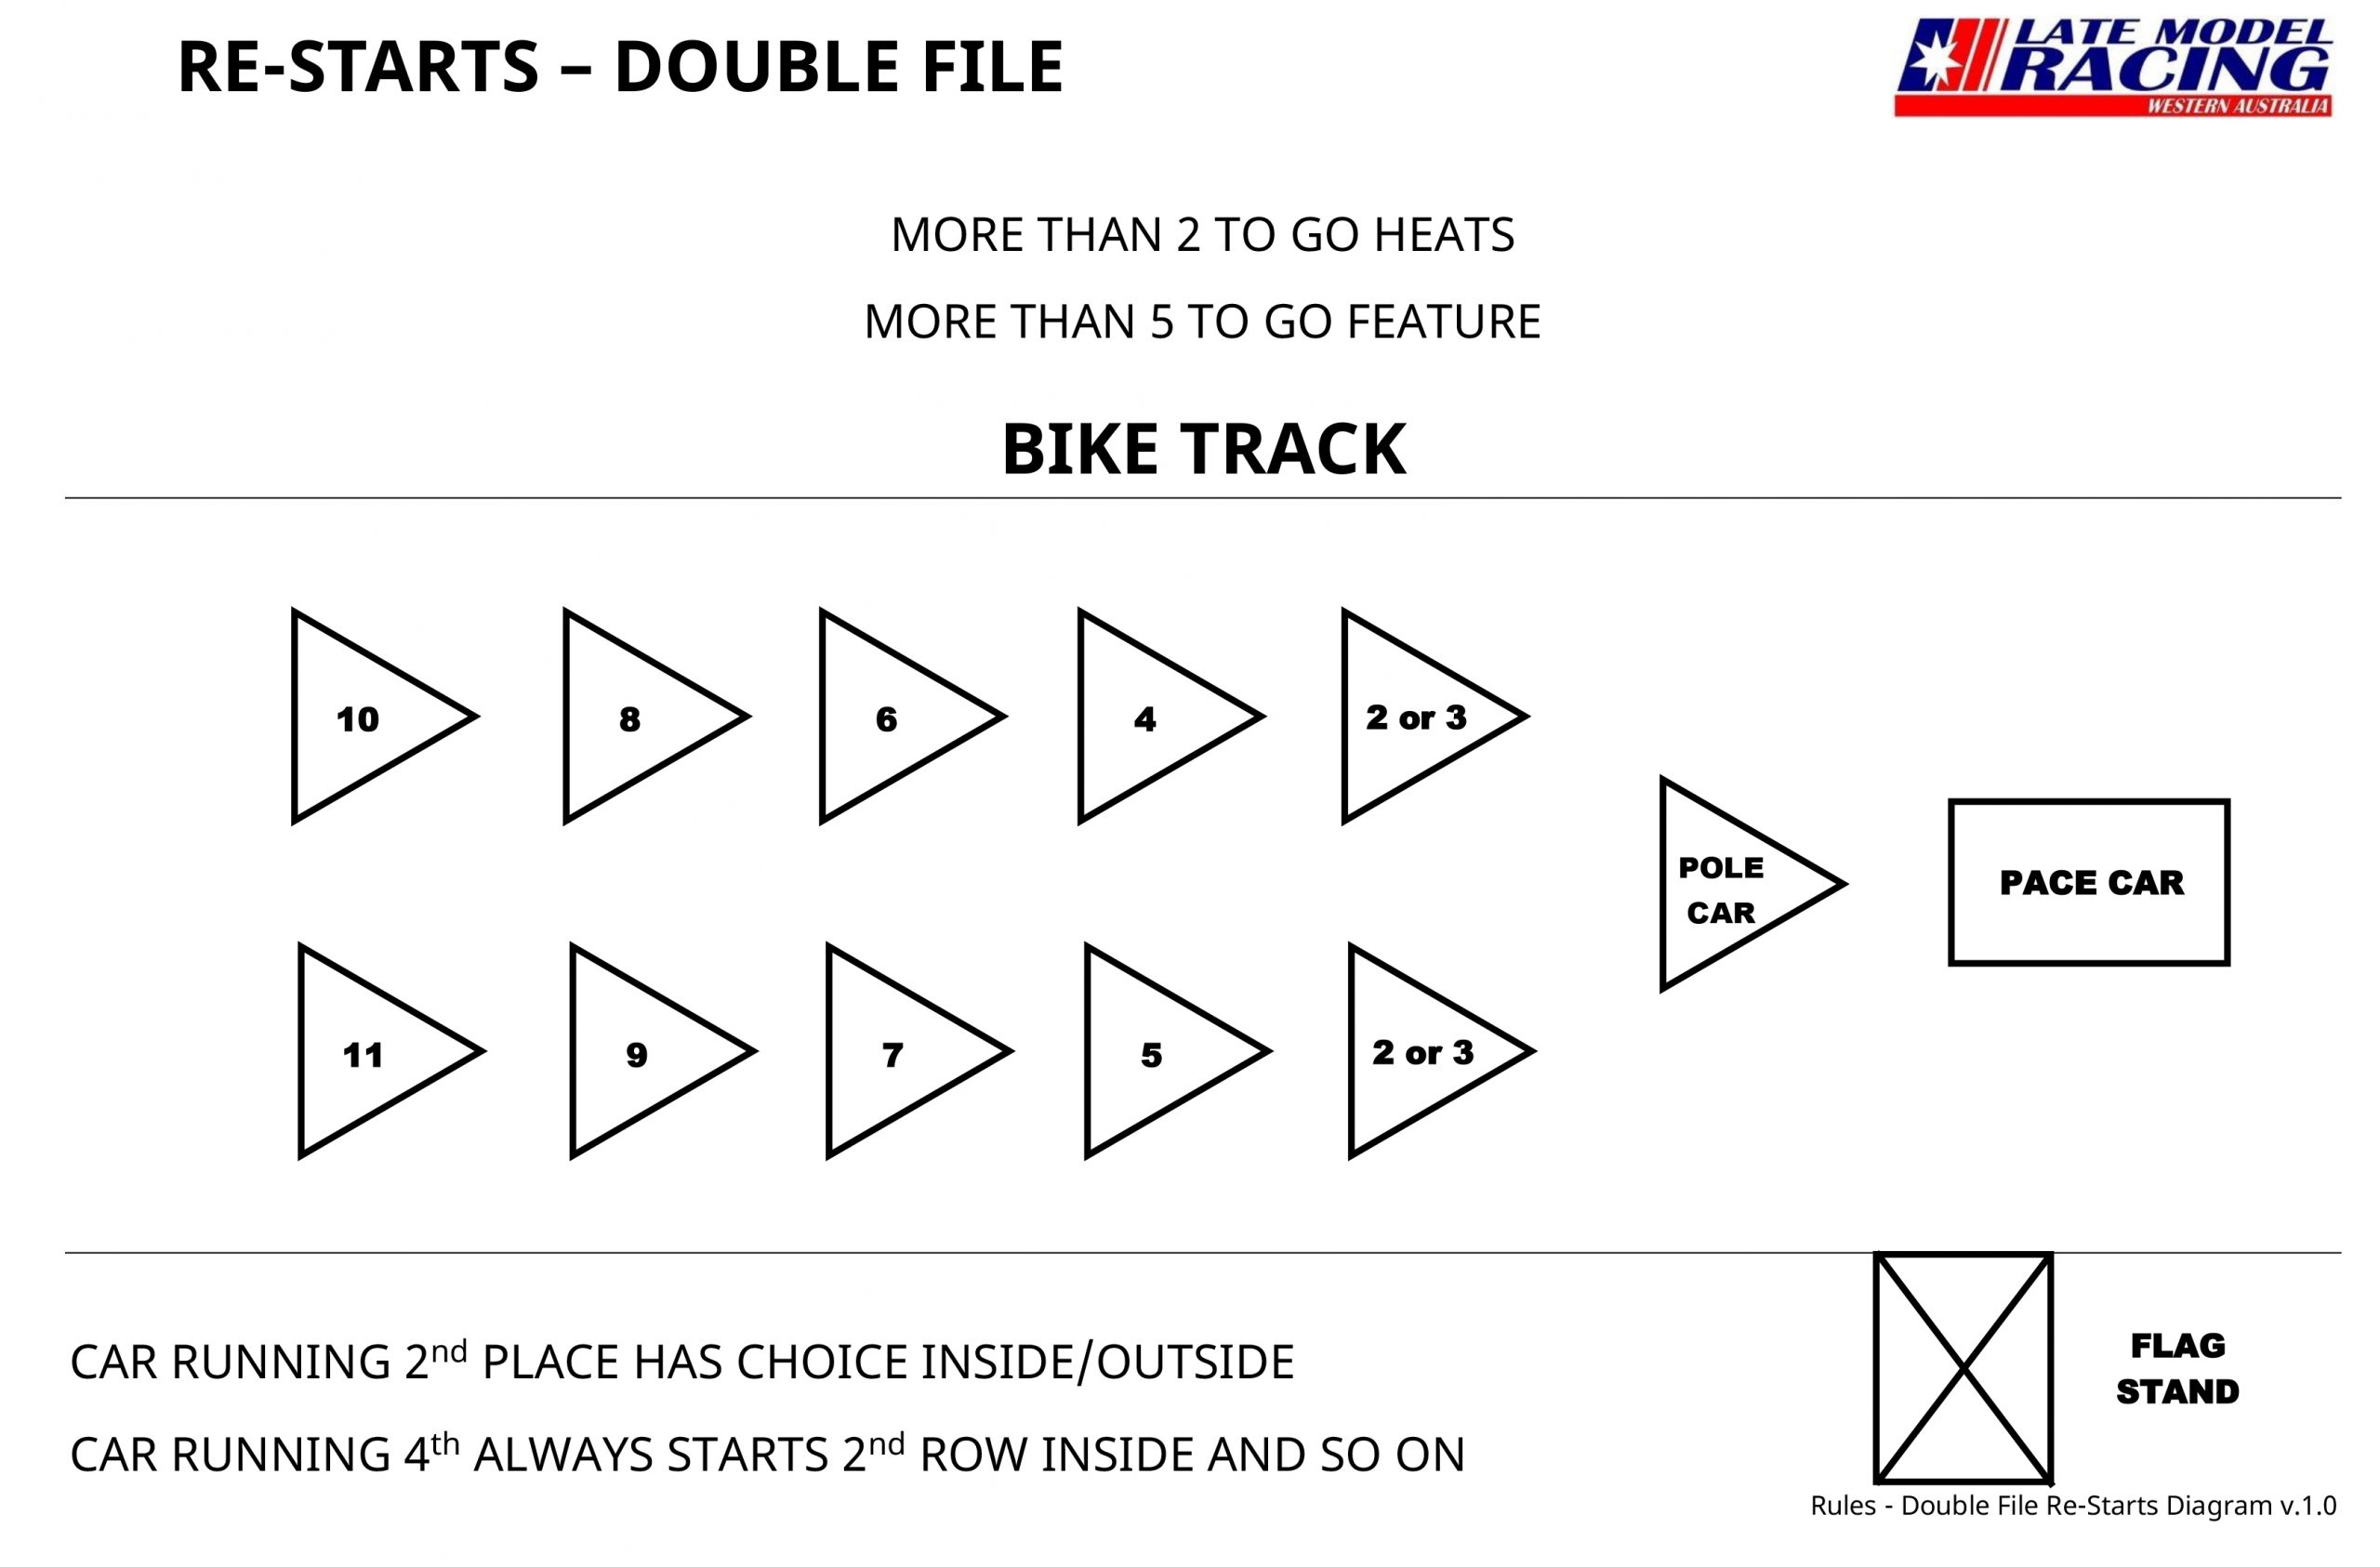 Rules - Double File Re-Starts Diagram